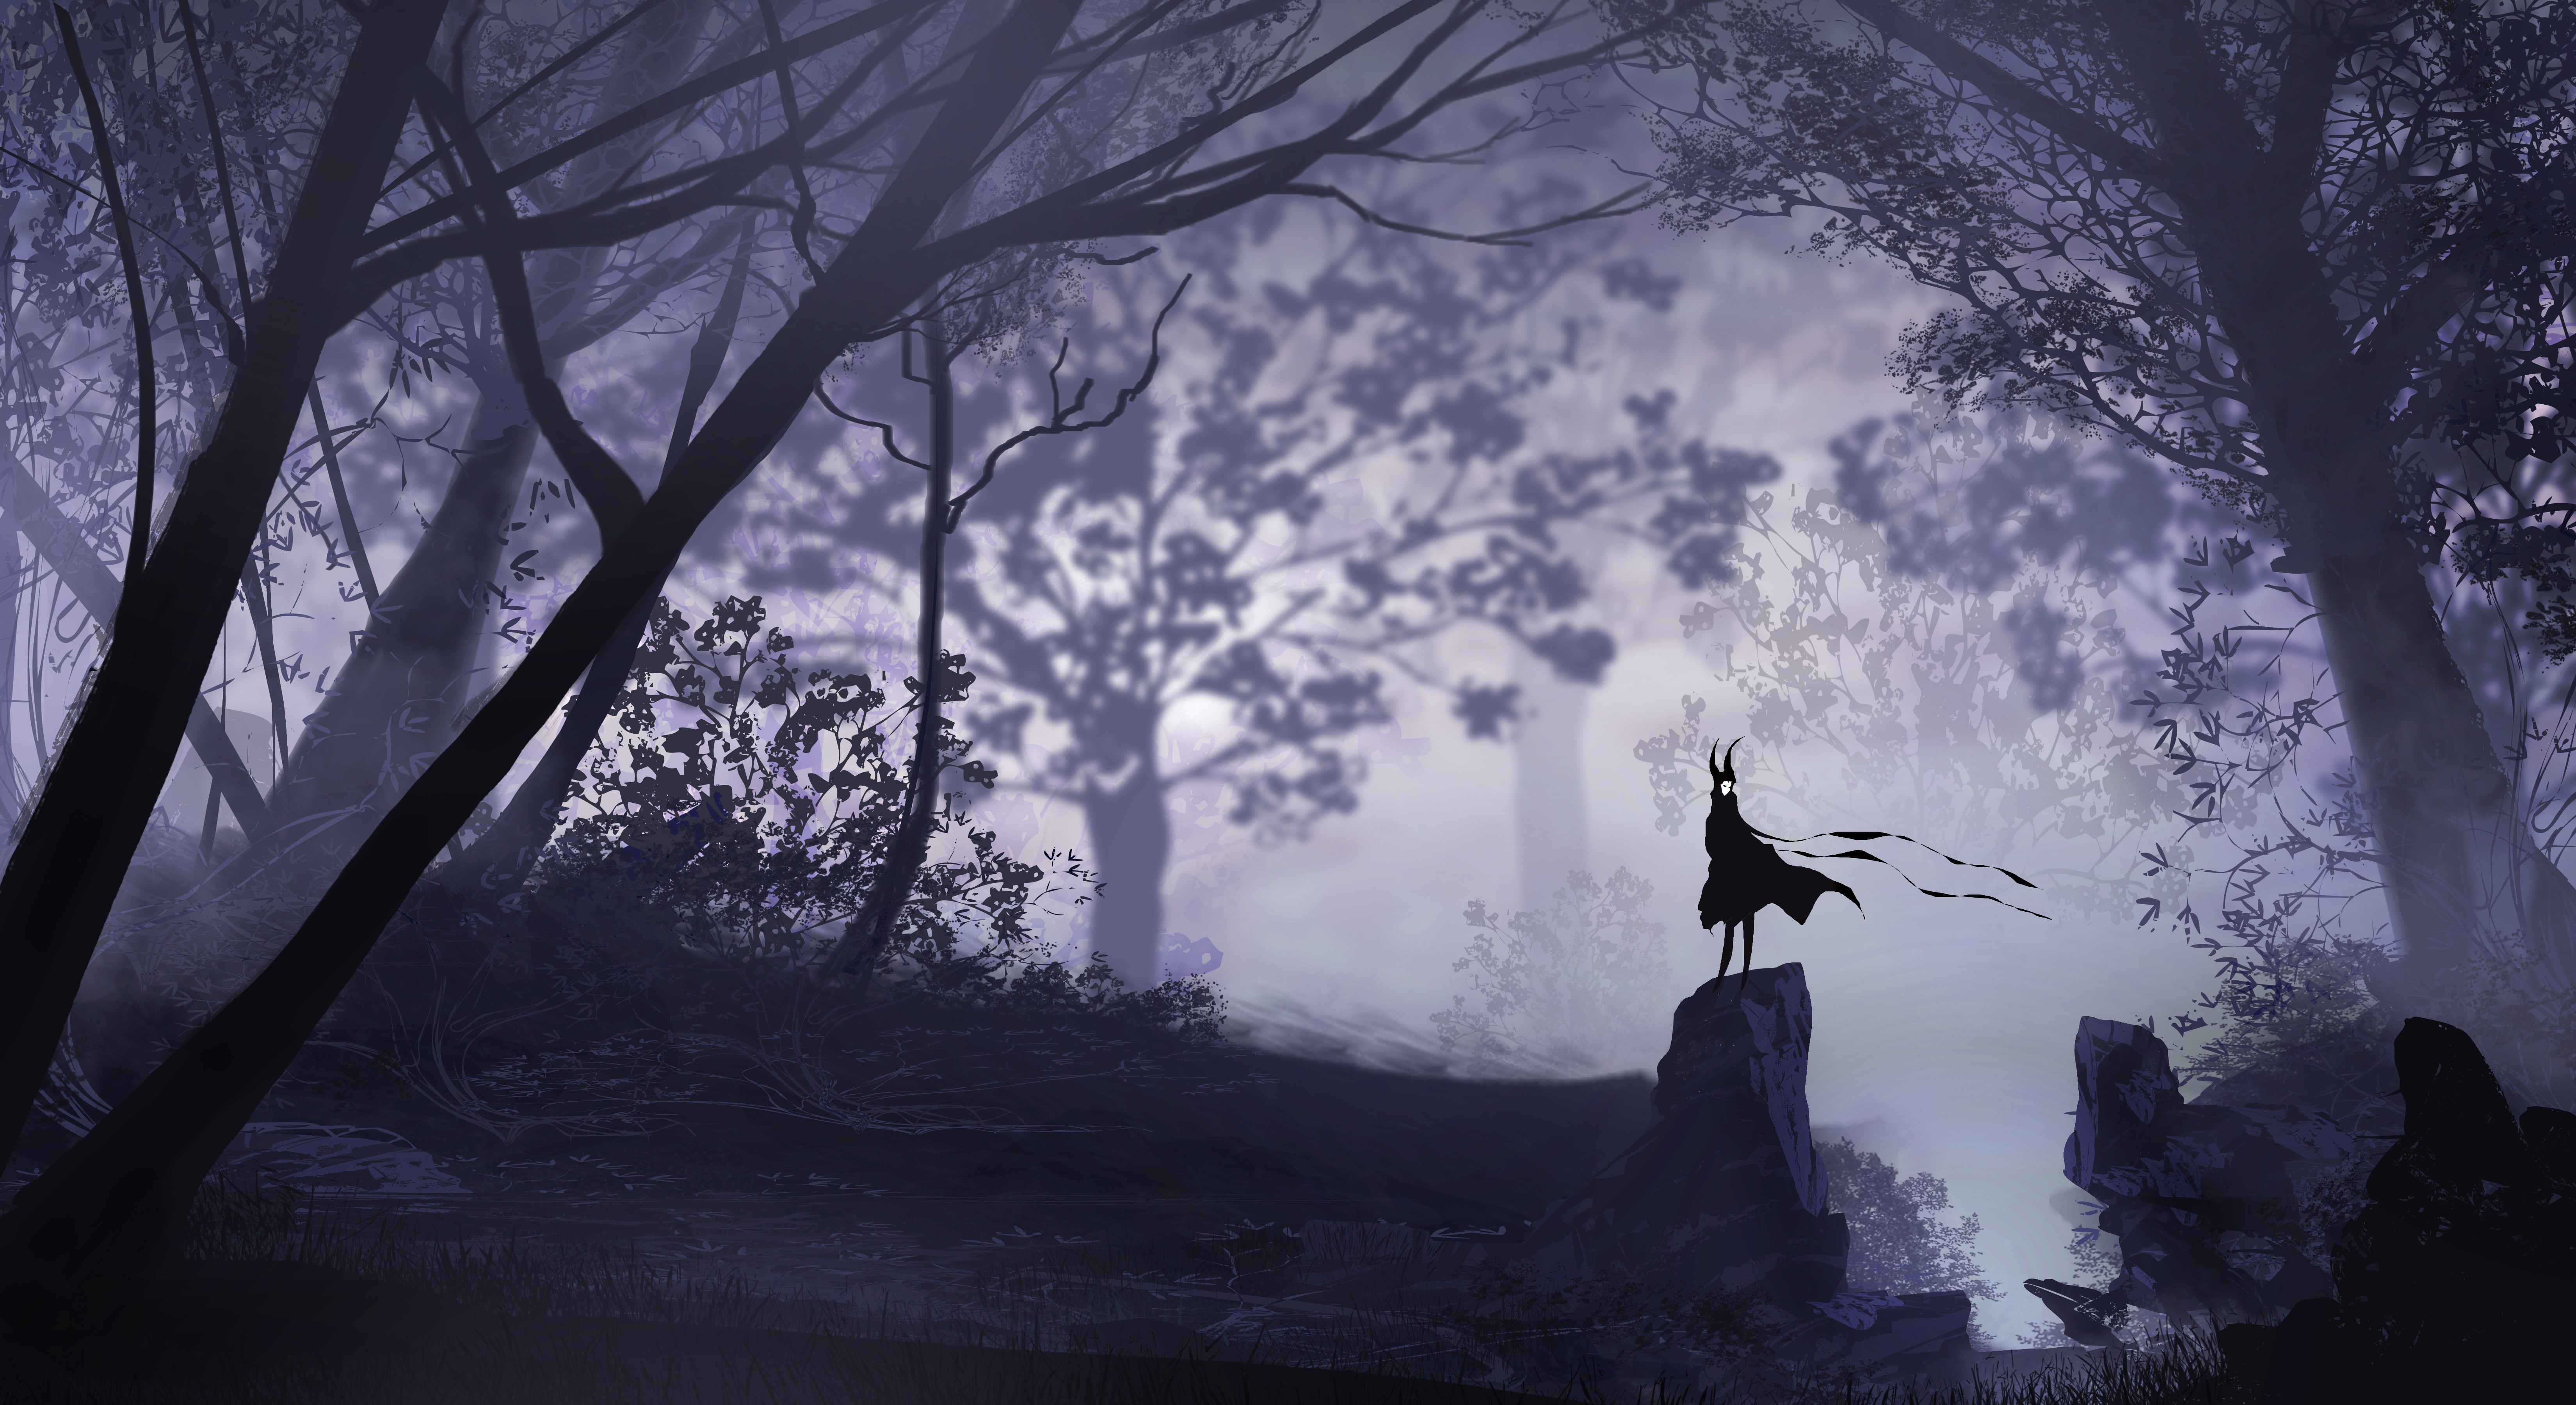 Anime Girl Walking On Moon Wallpaper Dark Forest Vectors Wallpapers Hd Desktop And Mobile